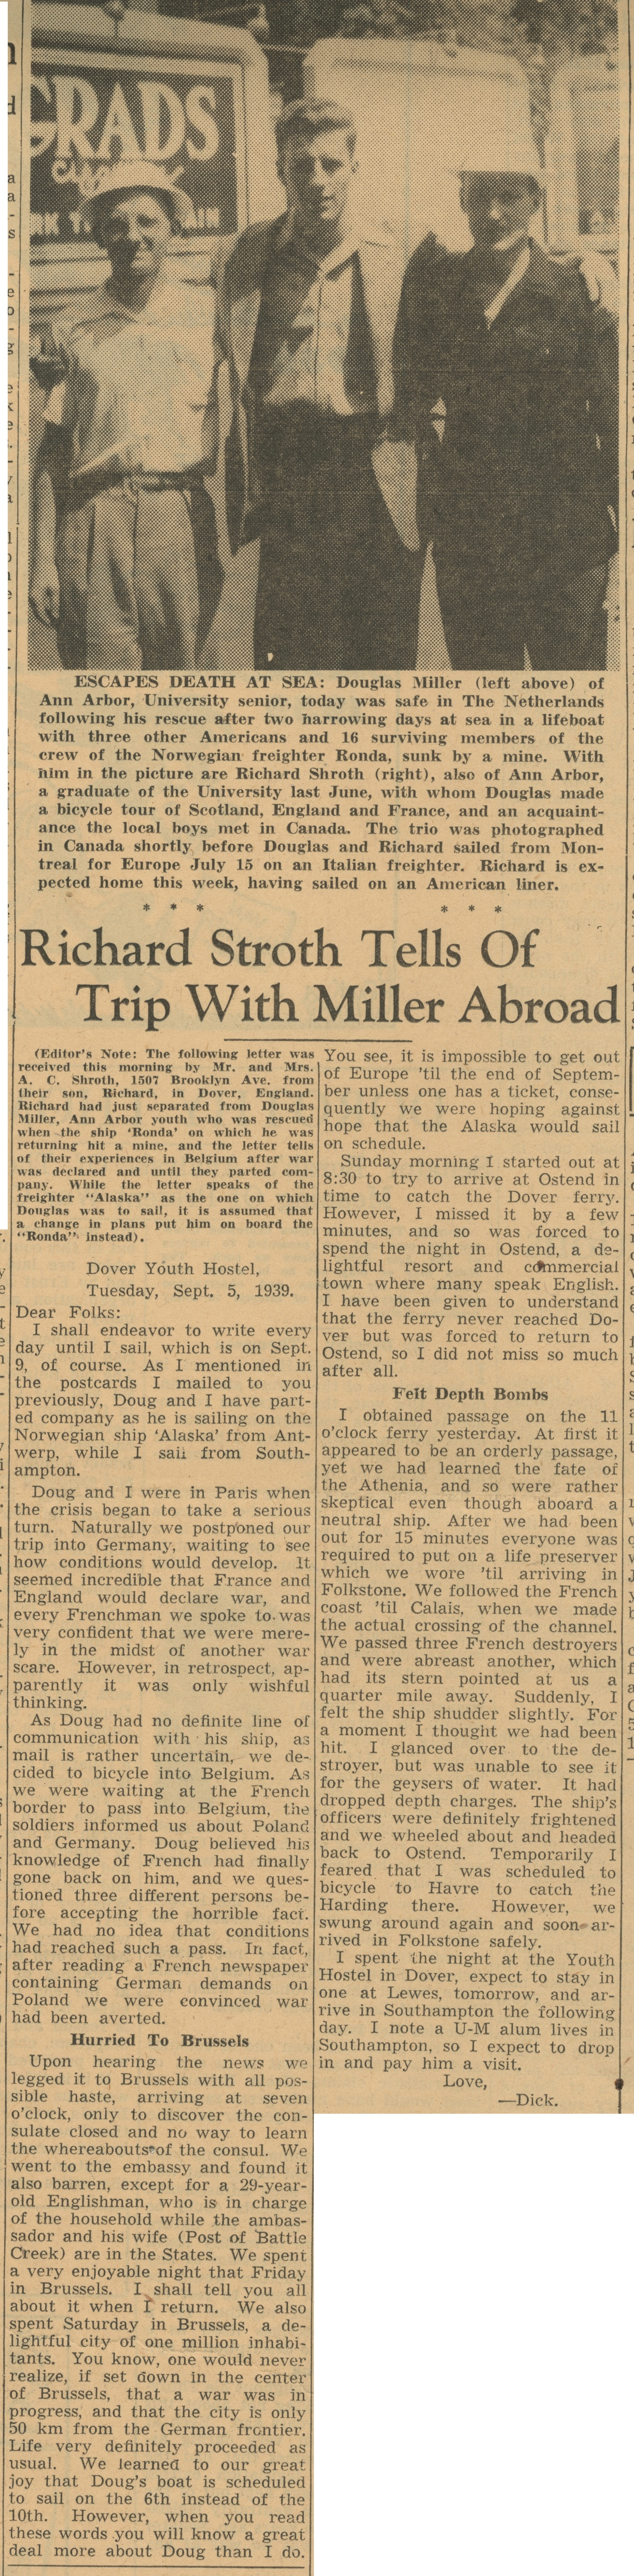 Escapes Death At Sea:  Richard Stroth Tells of Trip With Miller Abroad image